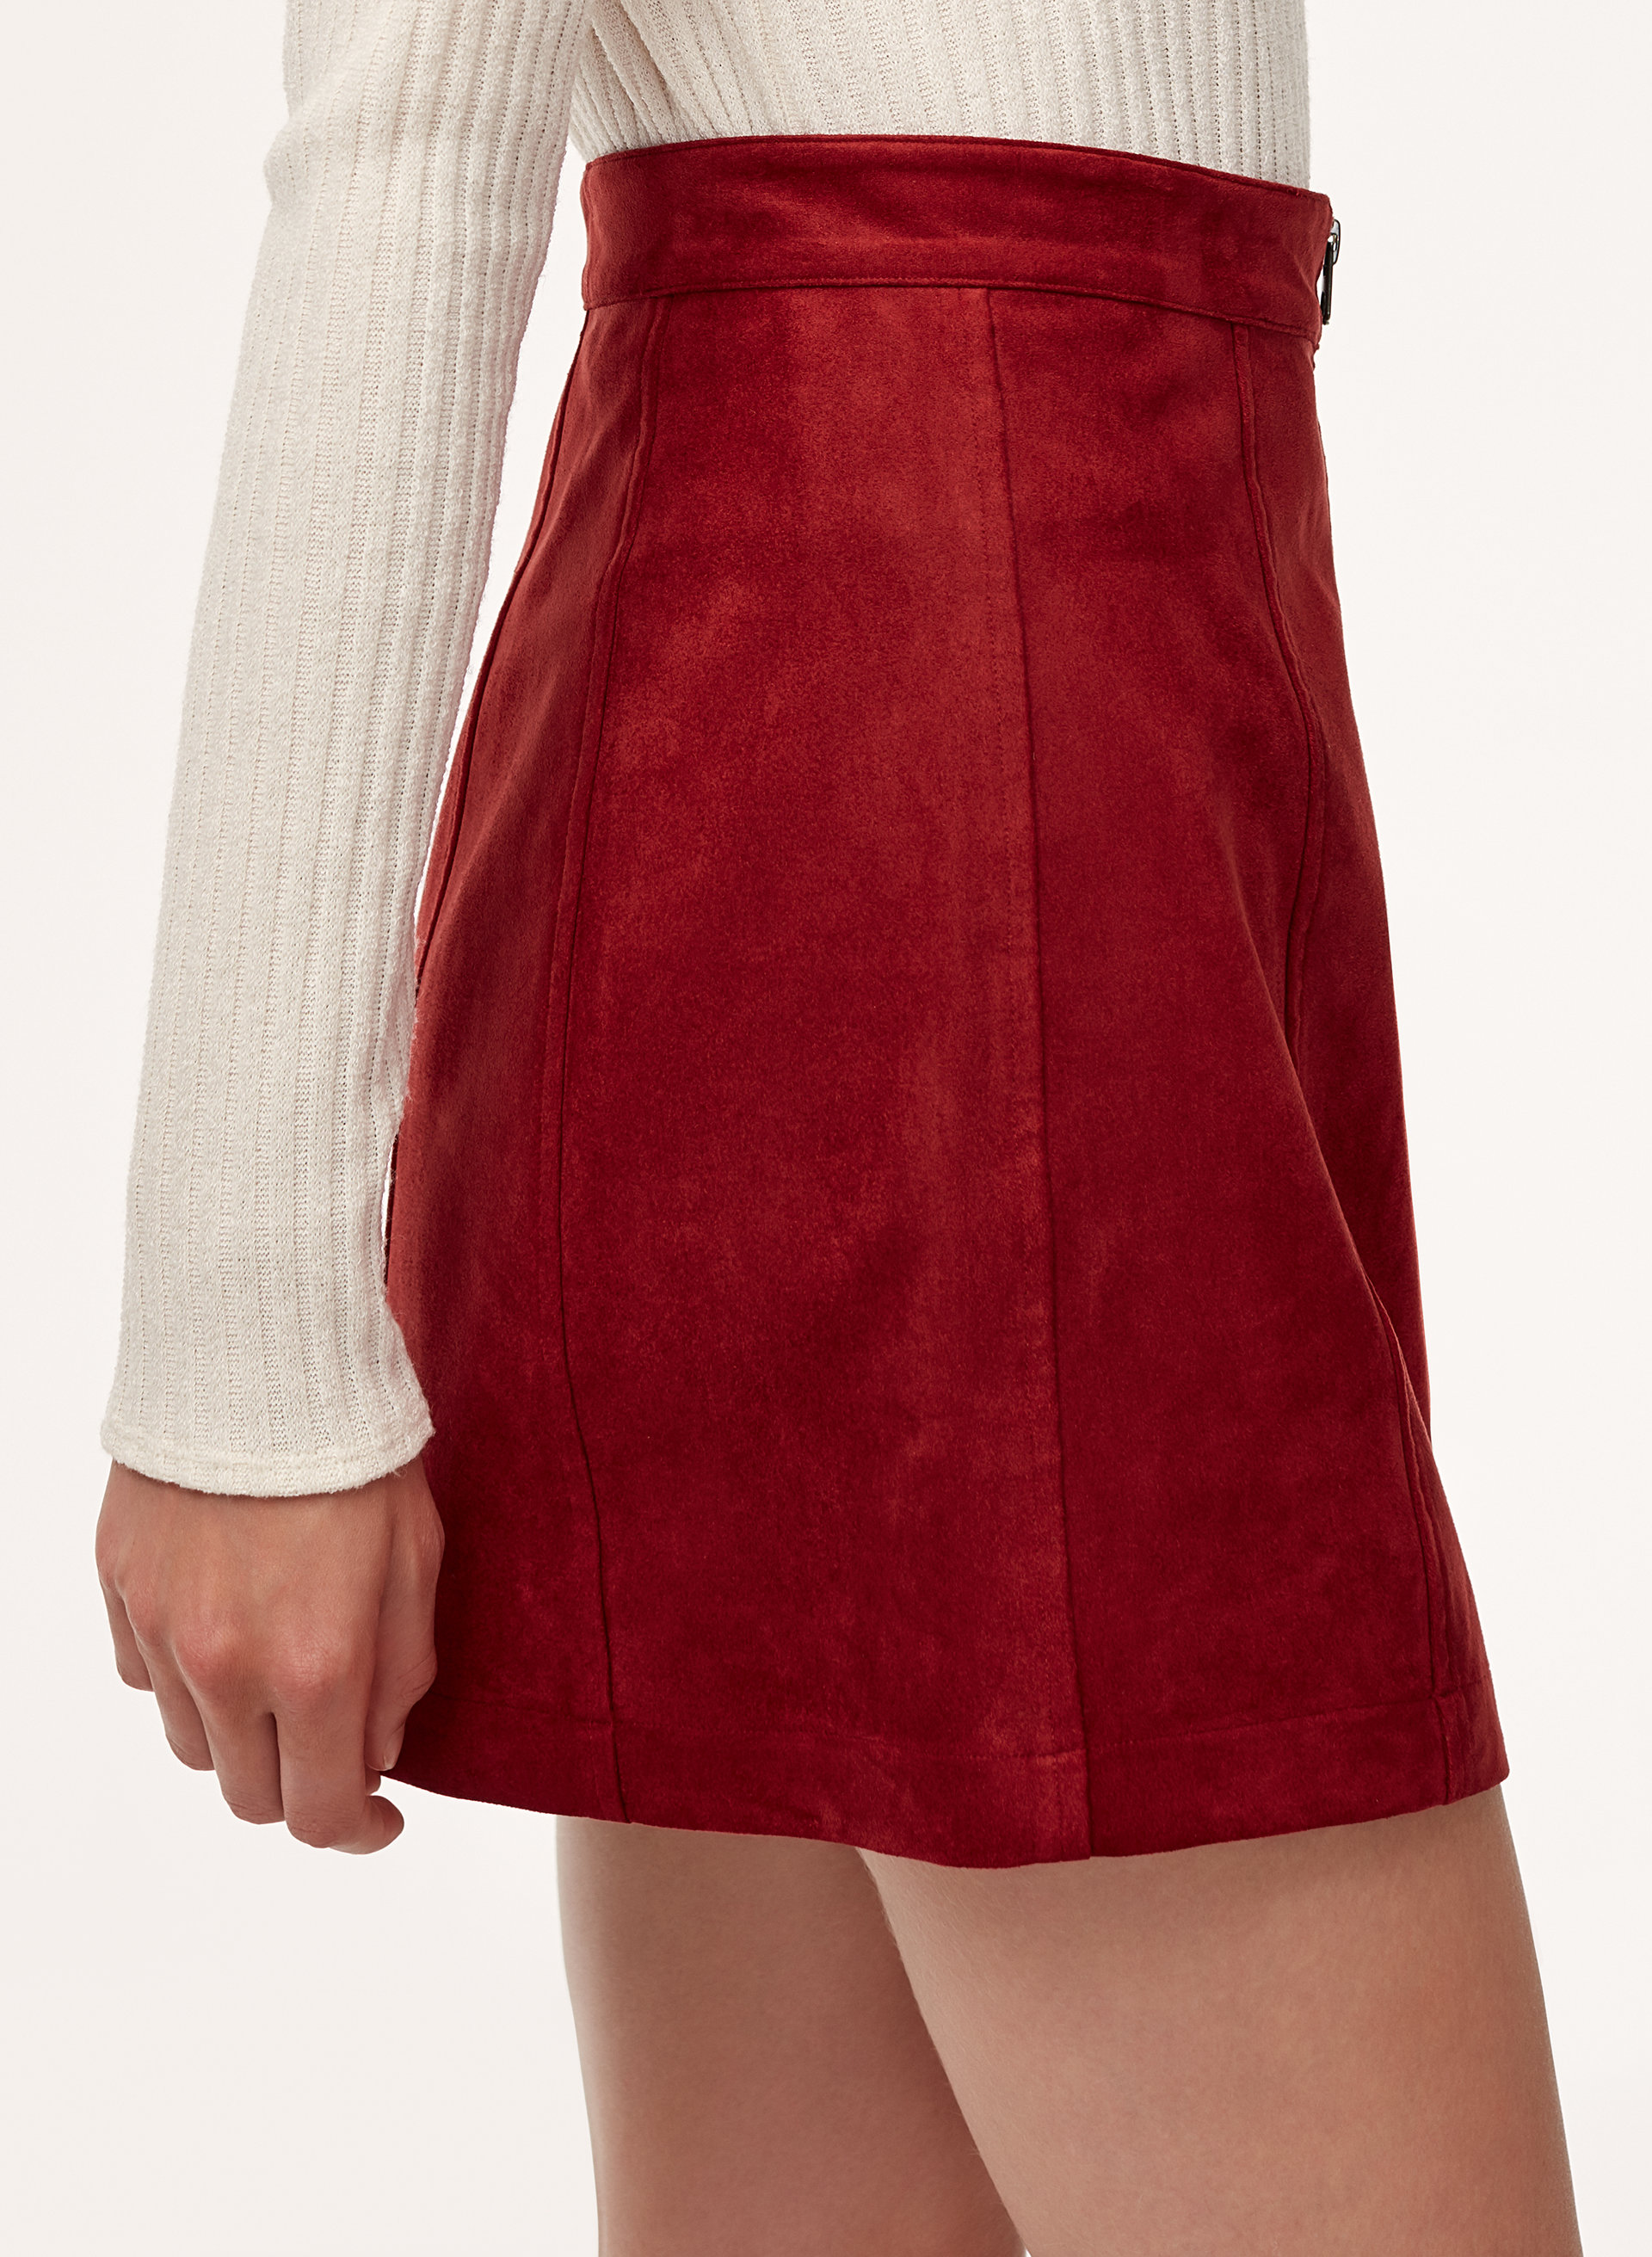 74953177ad LEAH SKIRT - Faux suede, zip-up mini skirt